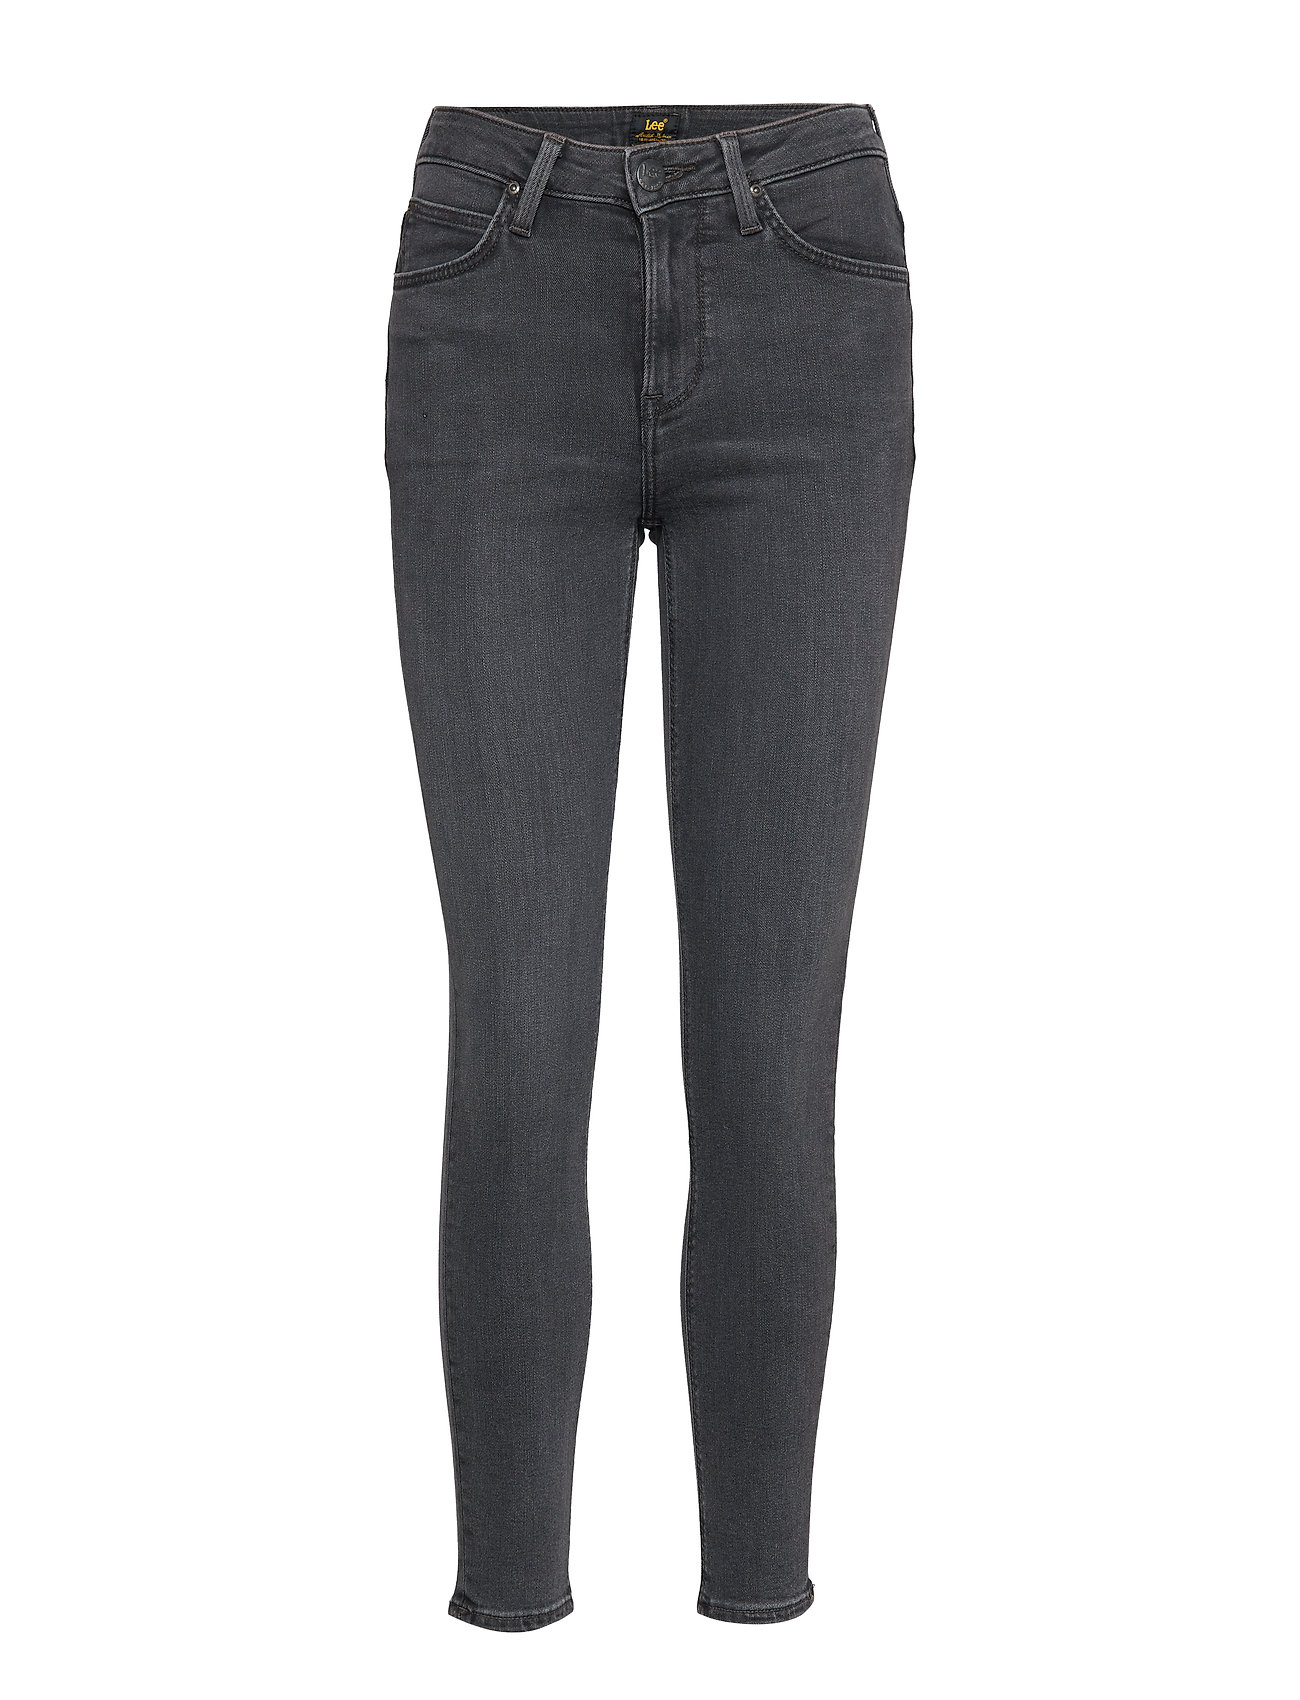 Lee Jeans SCARLETT - HIGH BUCKLIN